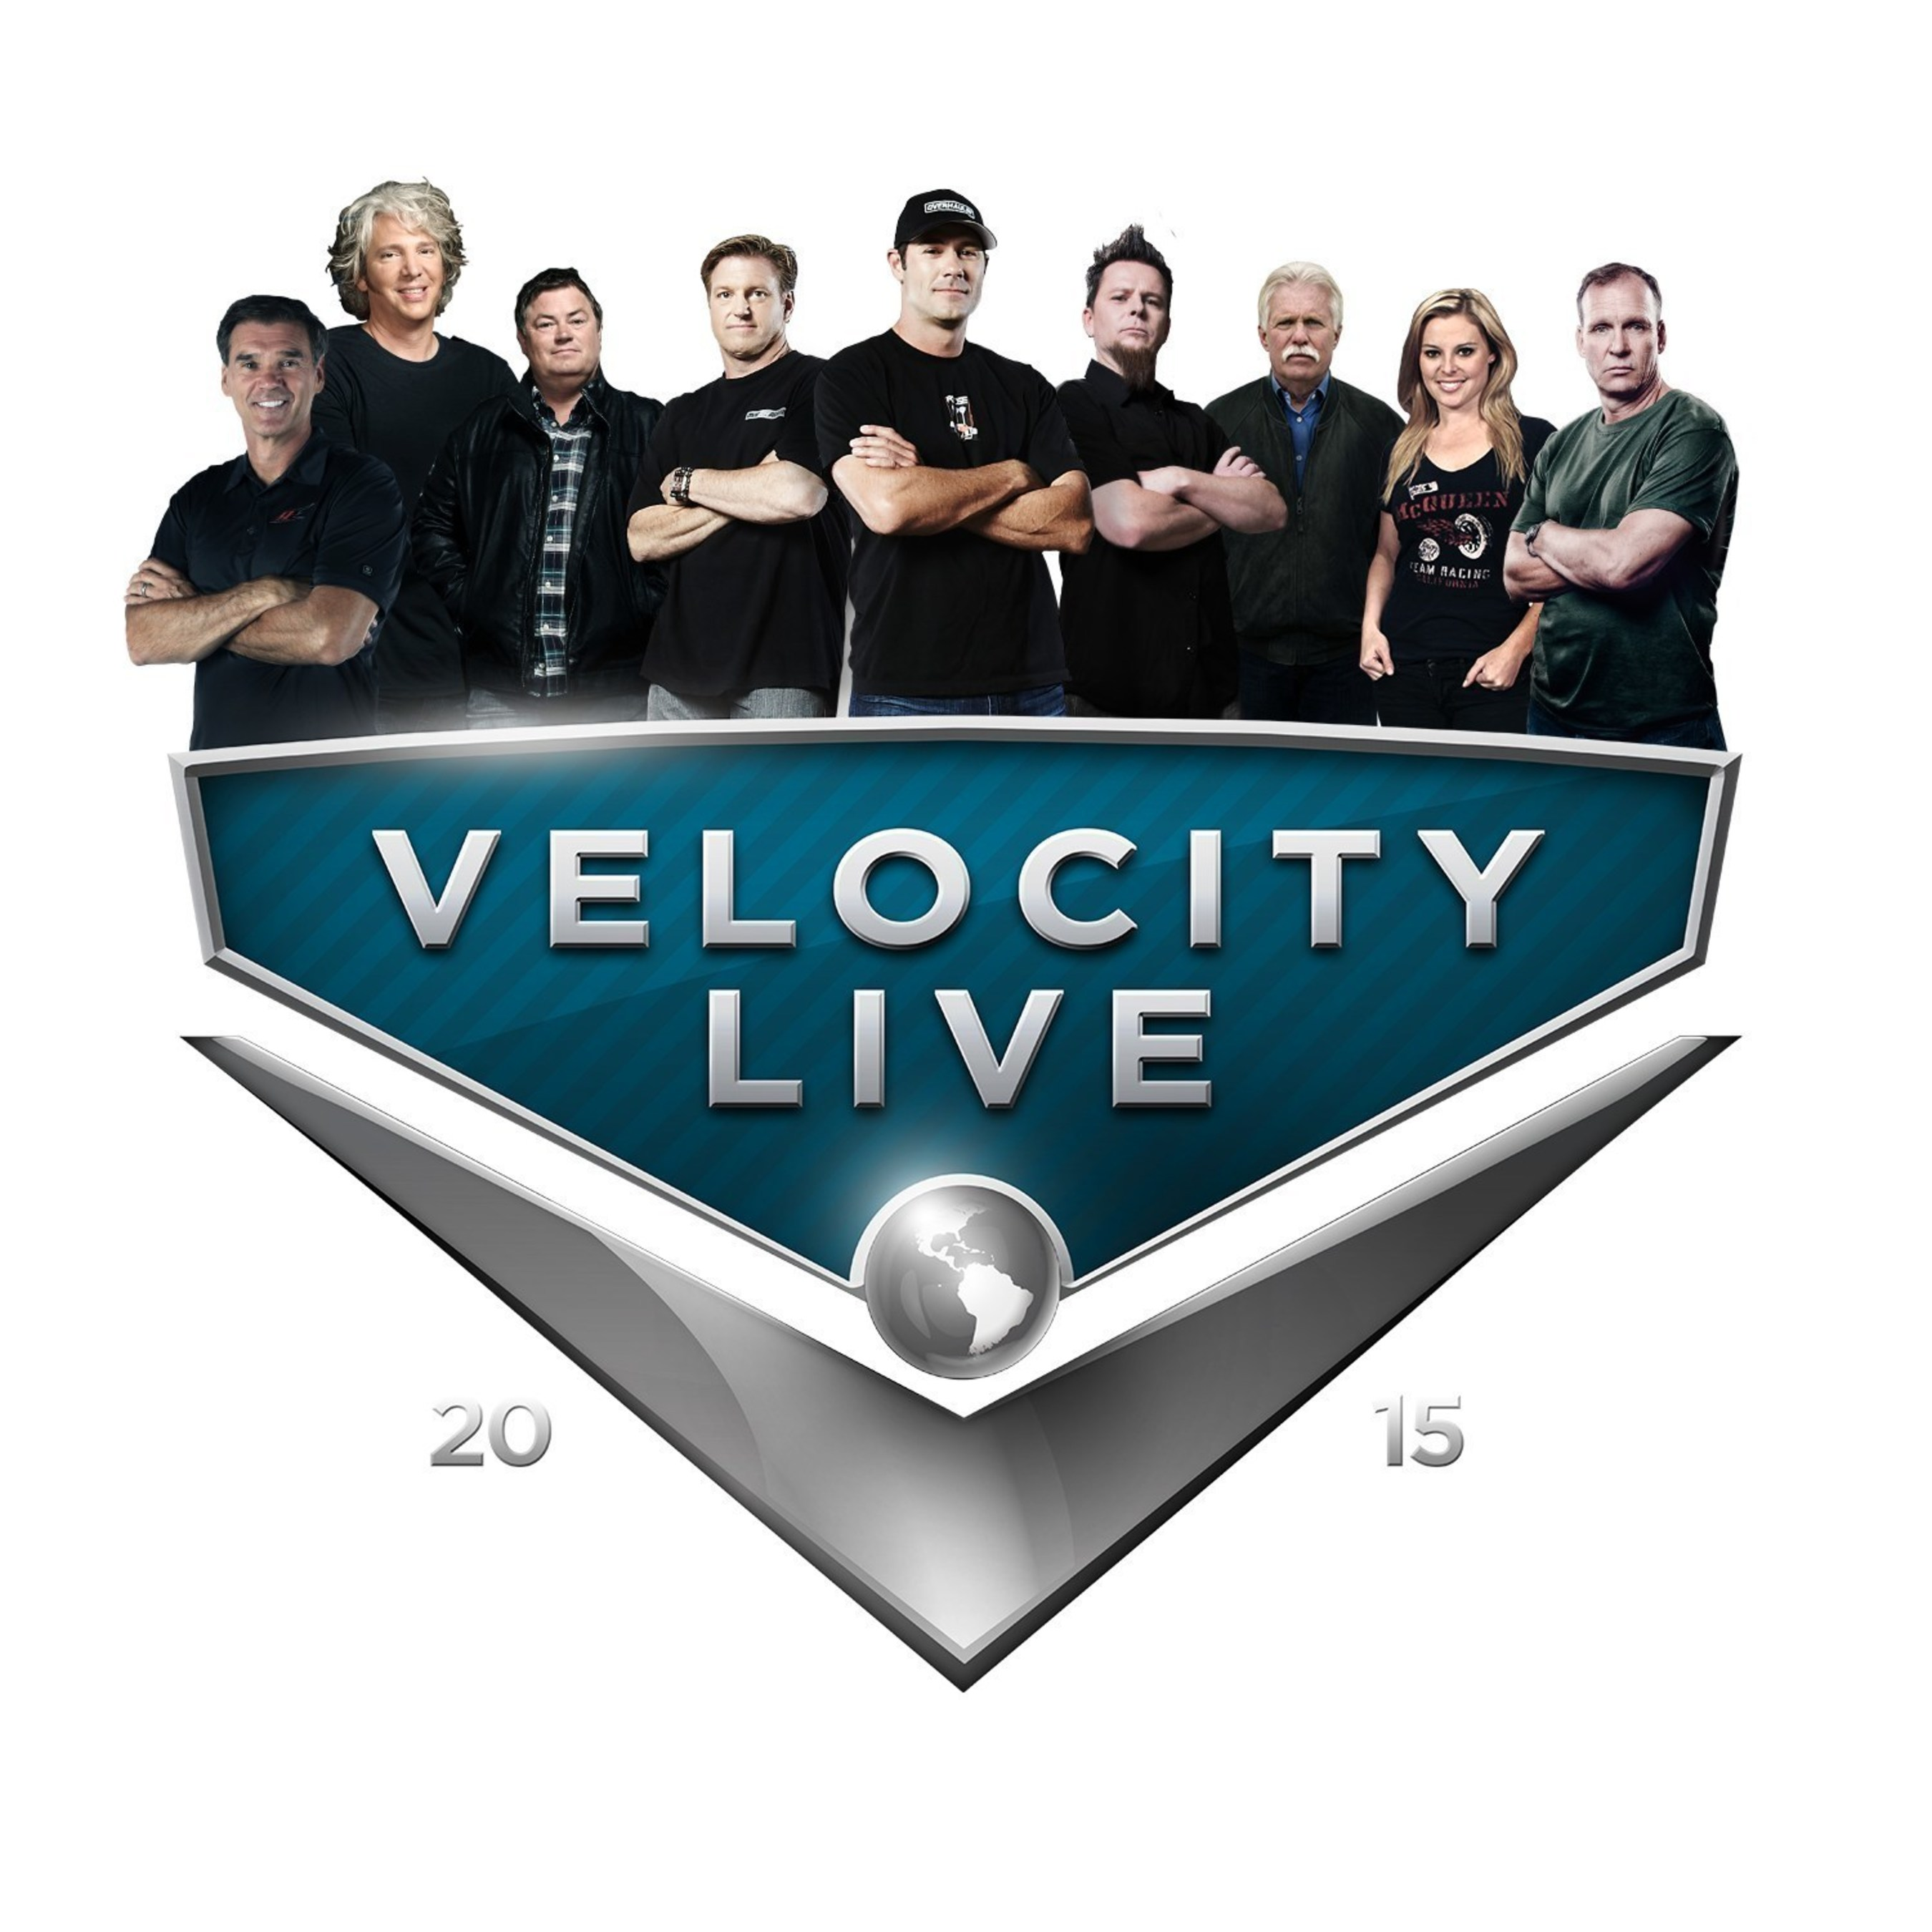 Velocity Live 2015 at the Westgate Resort & Casino Showroom in Las Vegas on Wednesday, November 4, 2015, at 4 PM PT. Tickets are free and available only to those with a SEMA Show badge. Get your tickets today by visiting velocitylive2015.com.